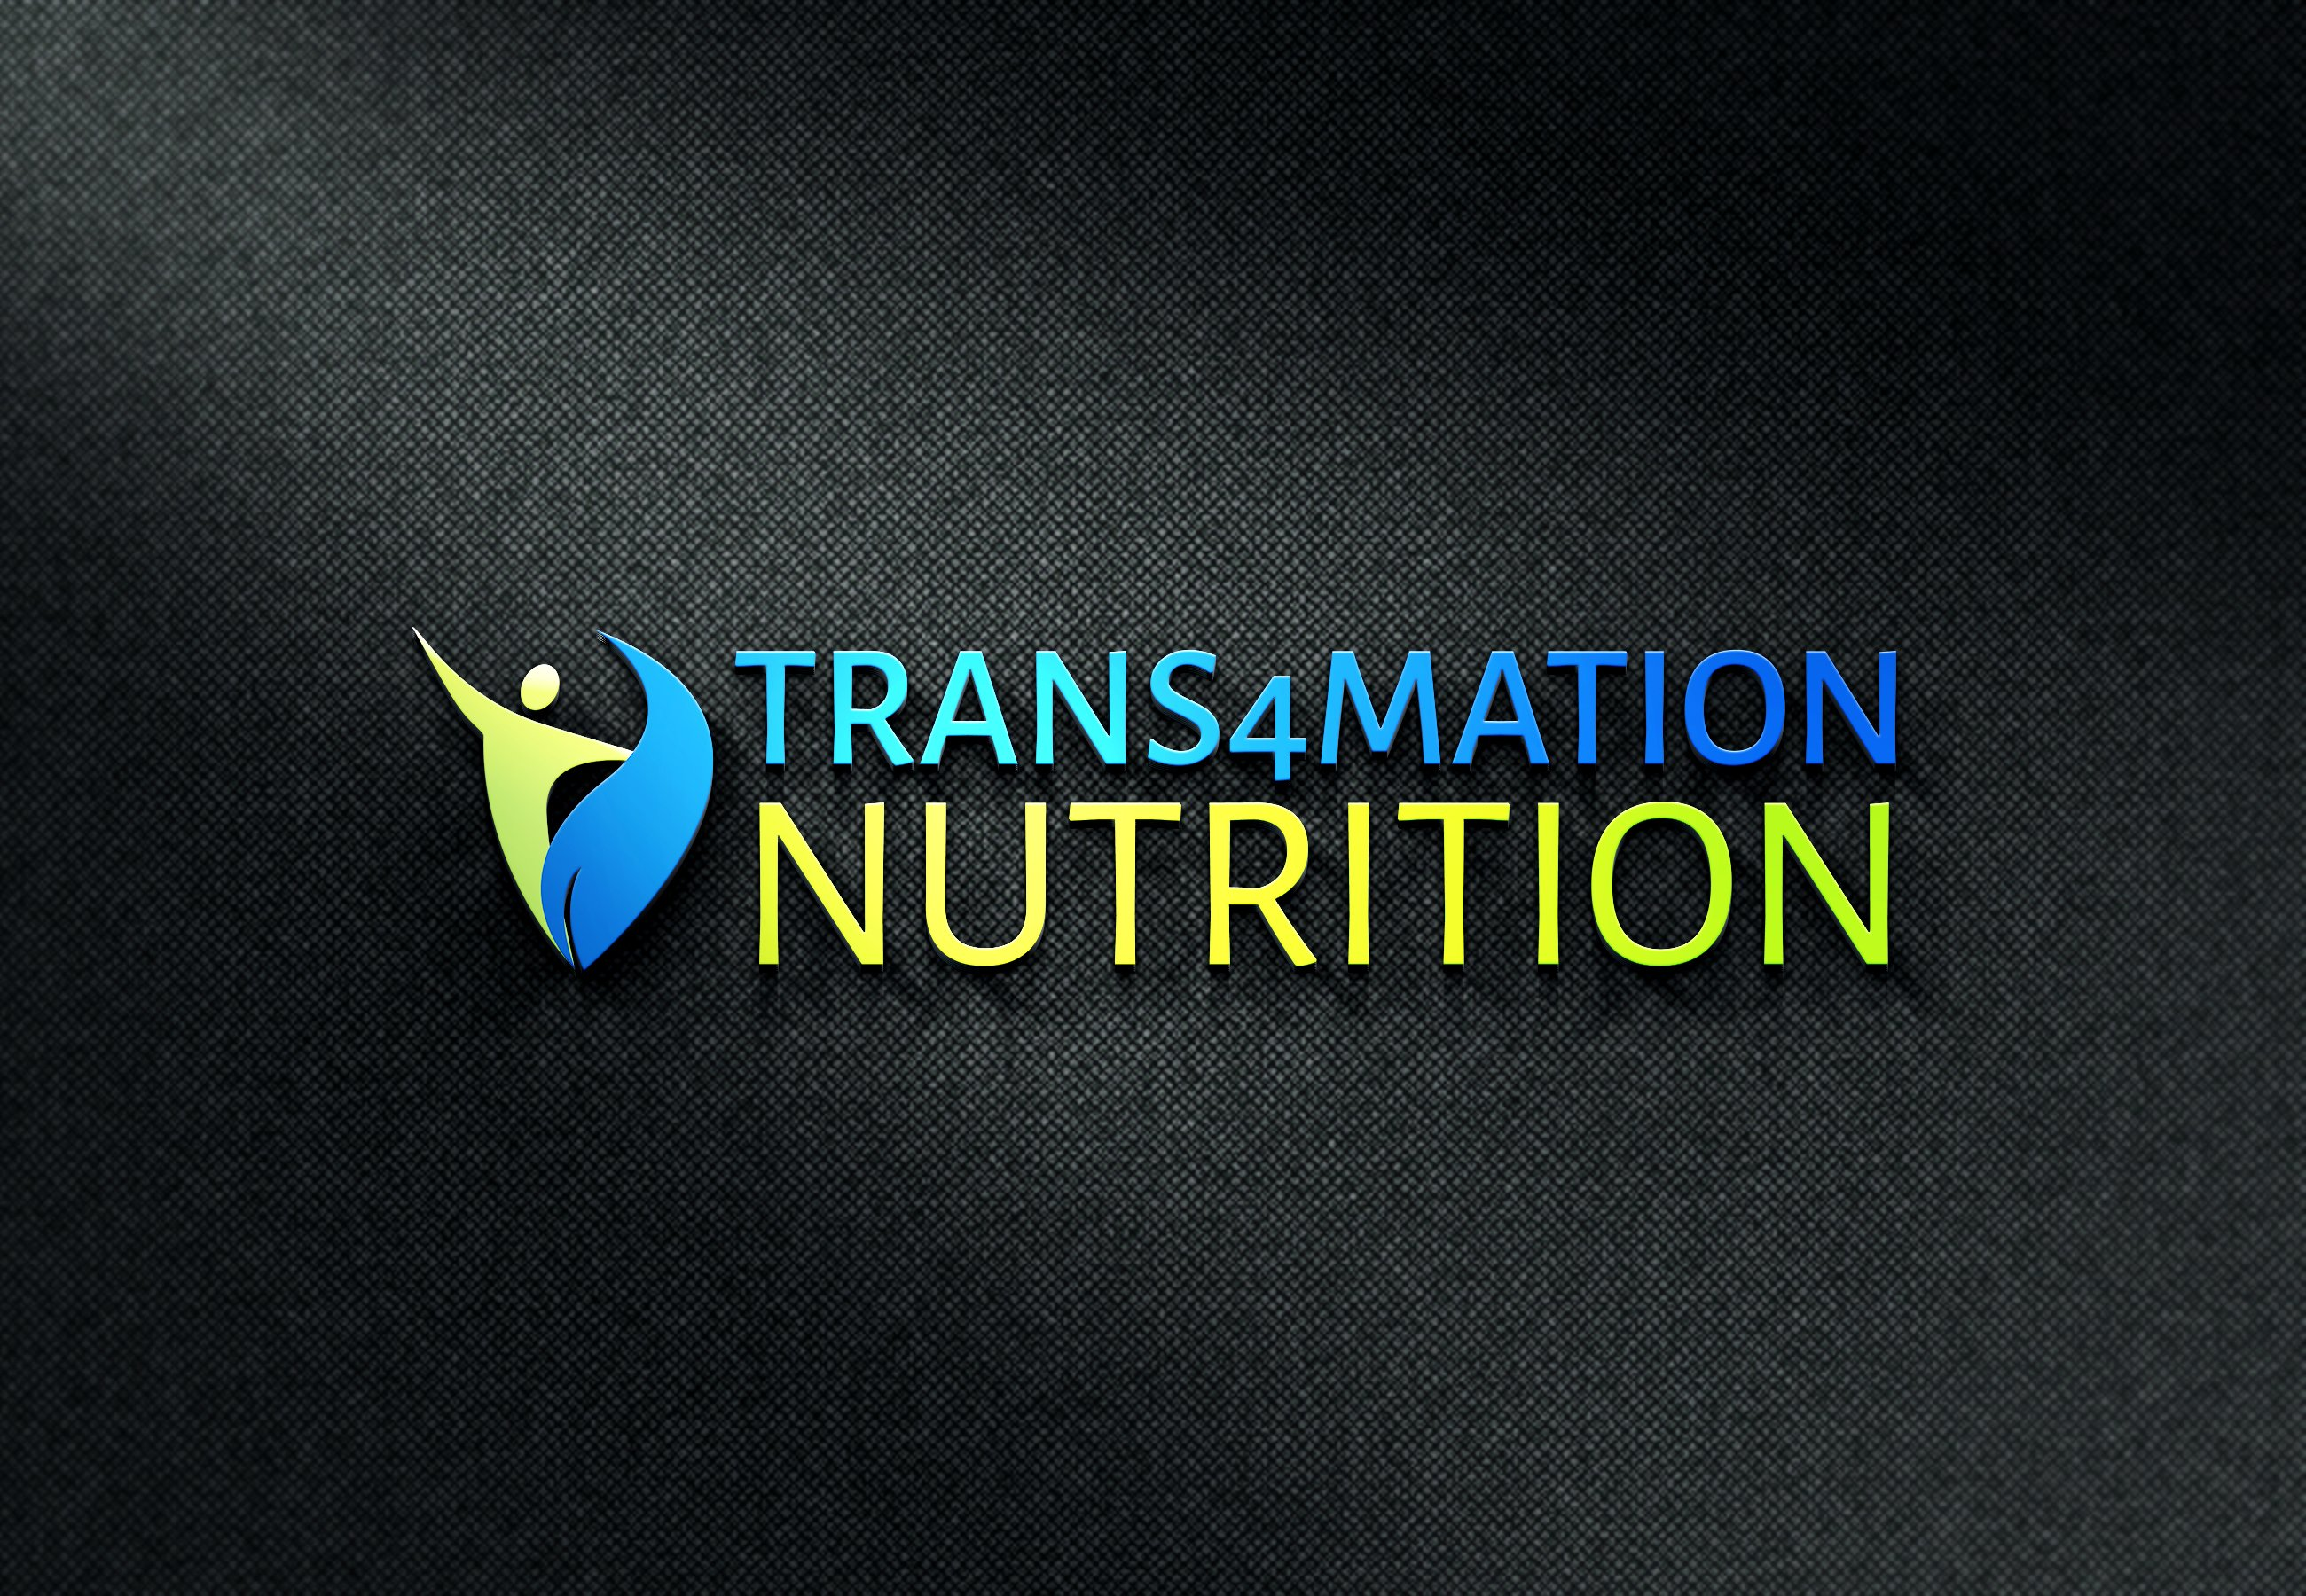 Trans4mation-logo-design